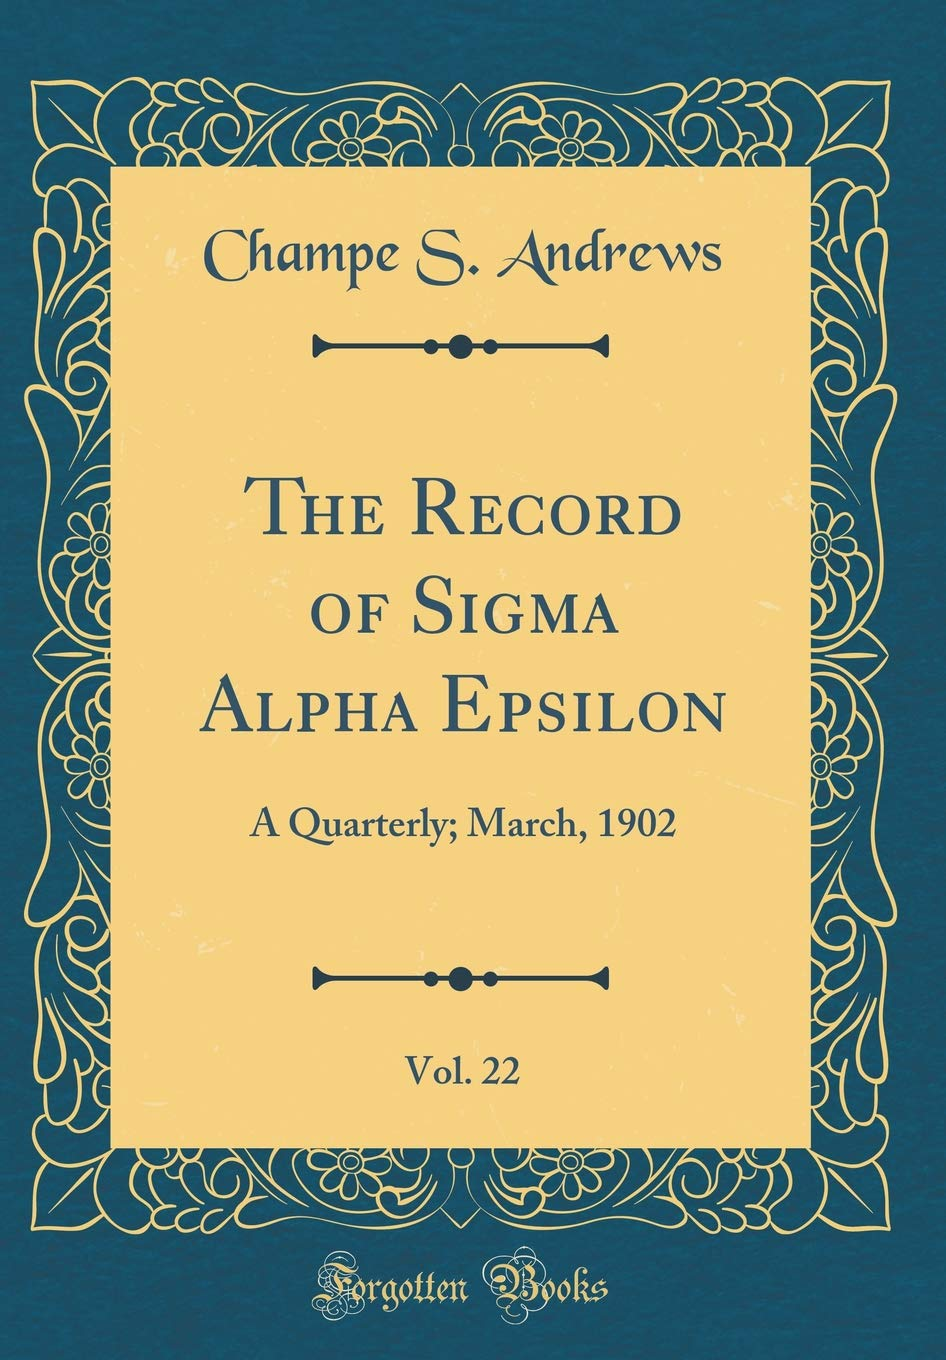 The Record of SIGMA Alpha Epsilon, Vol. 22: A Quarterly; March, 1902 (Classic Reprint) pdf epub